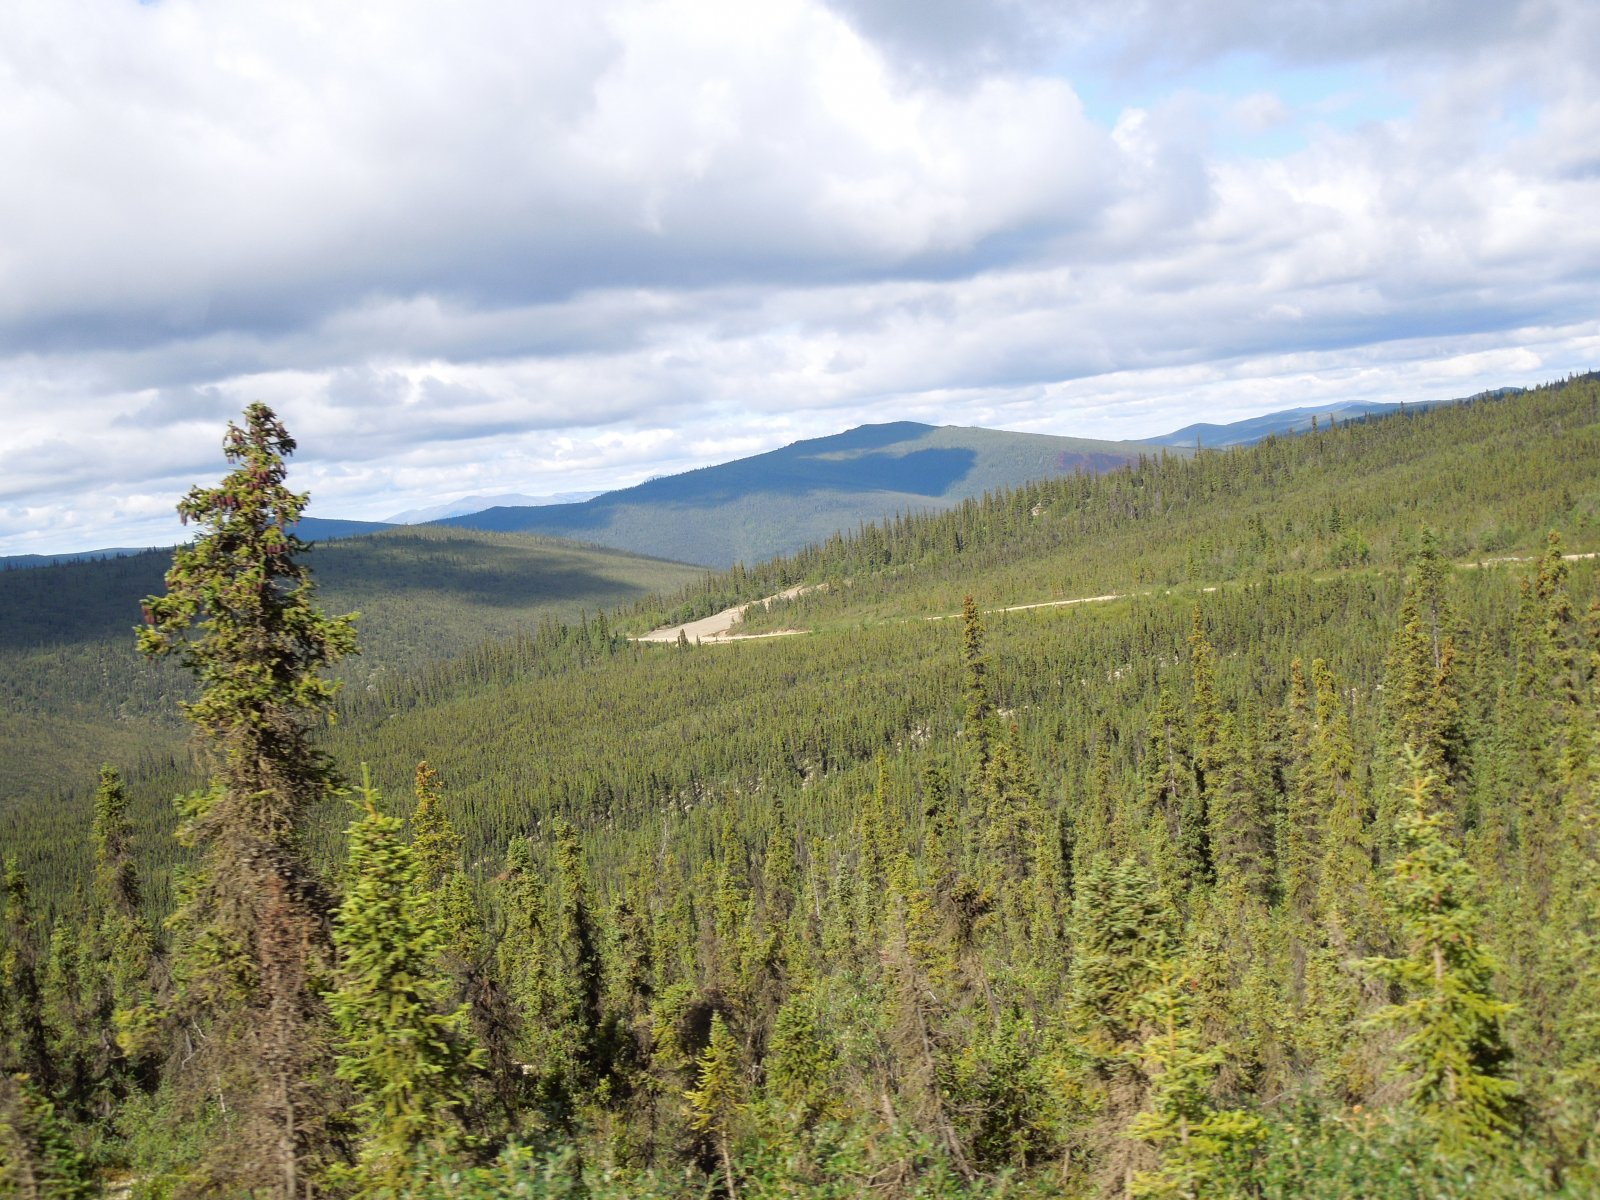 Click image for larger version  Name:Tok to Chicken to Dawson City 142.jpg Views:71 Size:440.9 KB ID:221639